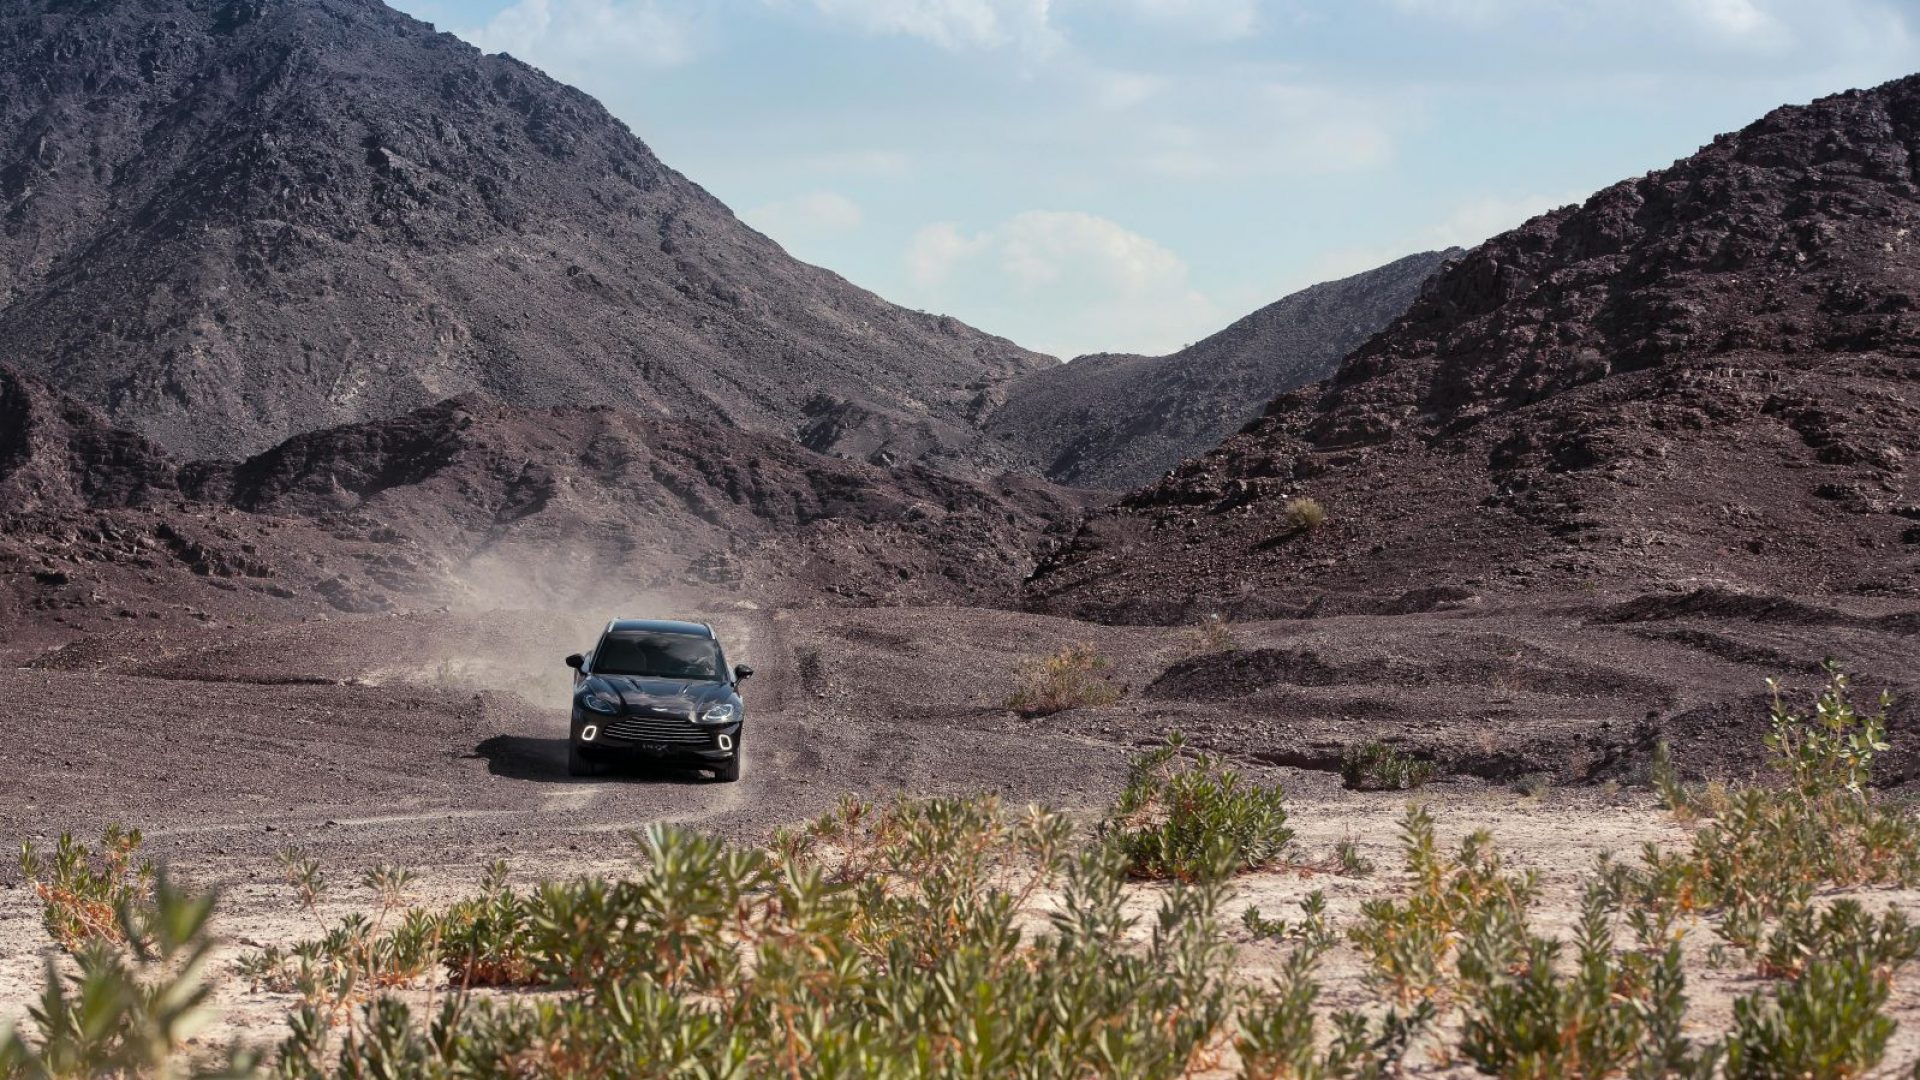 aston-martin-dbx-in-the-middle-east-29-jpg.